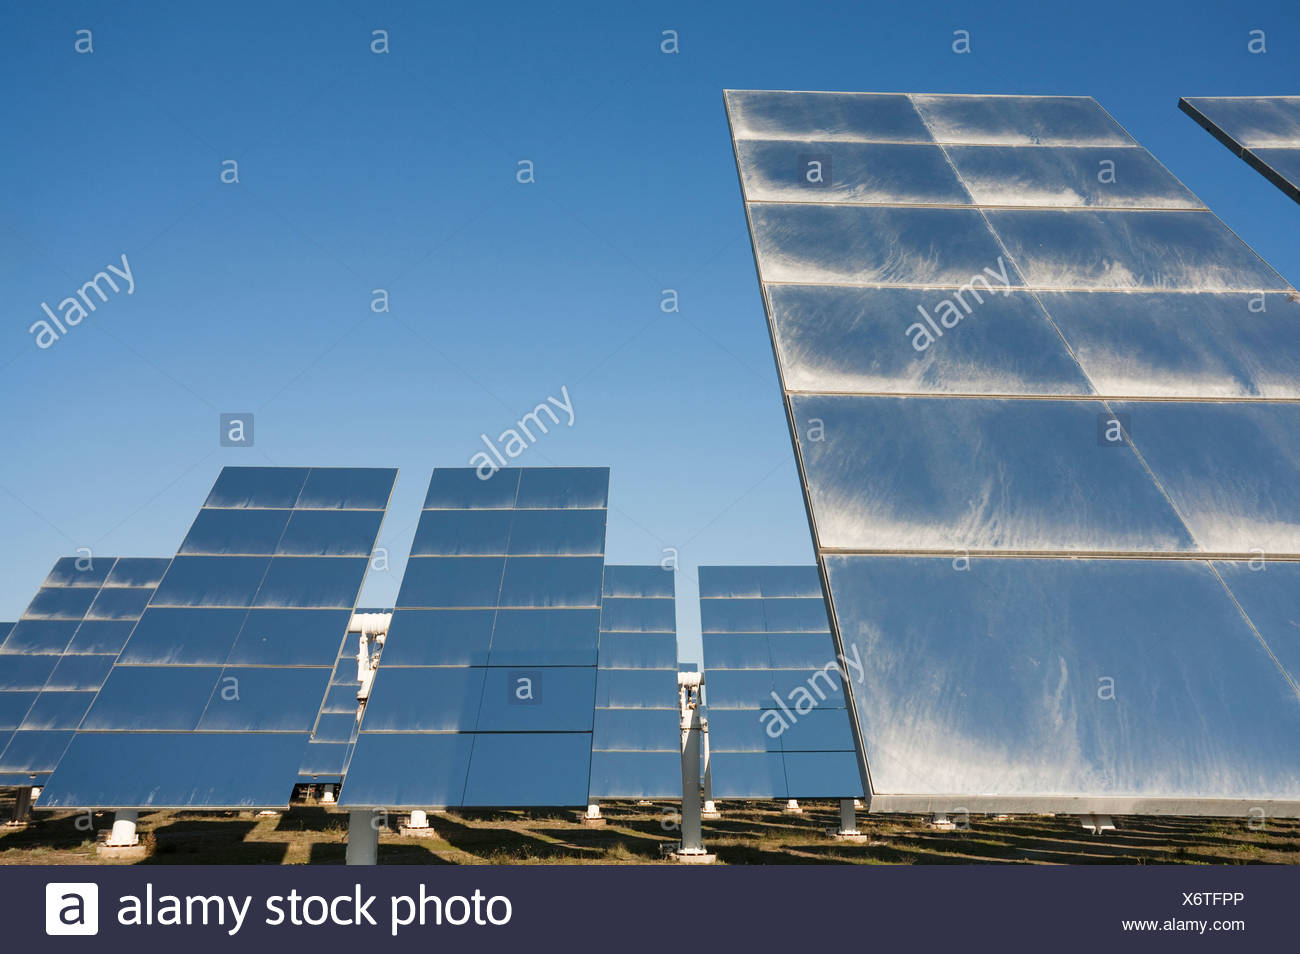 Heliostats Stock Photos & Heliostats Stock Images - Alamy